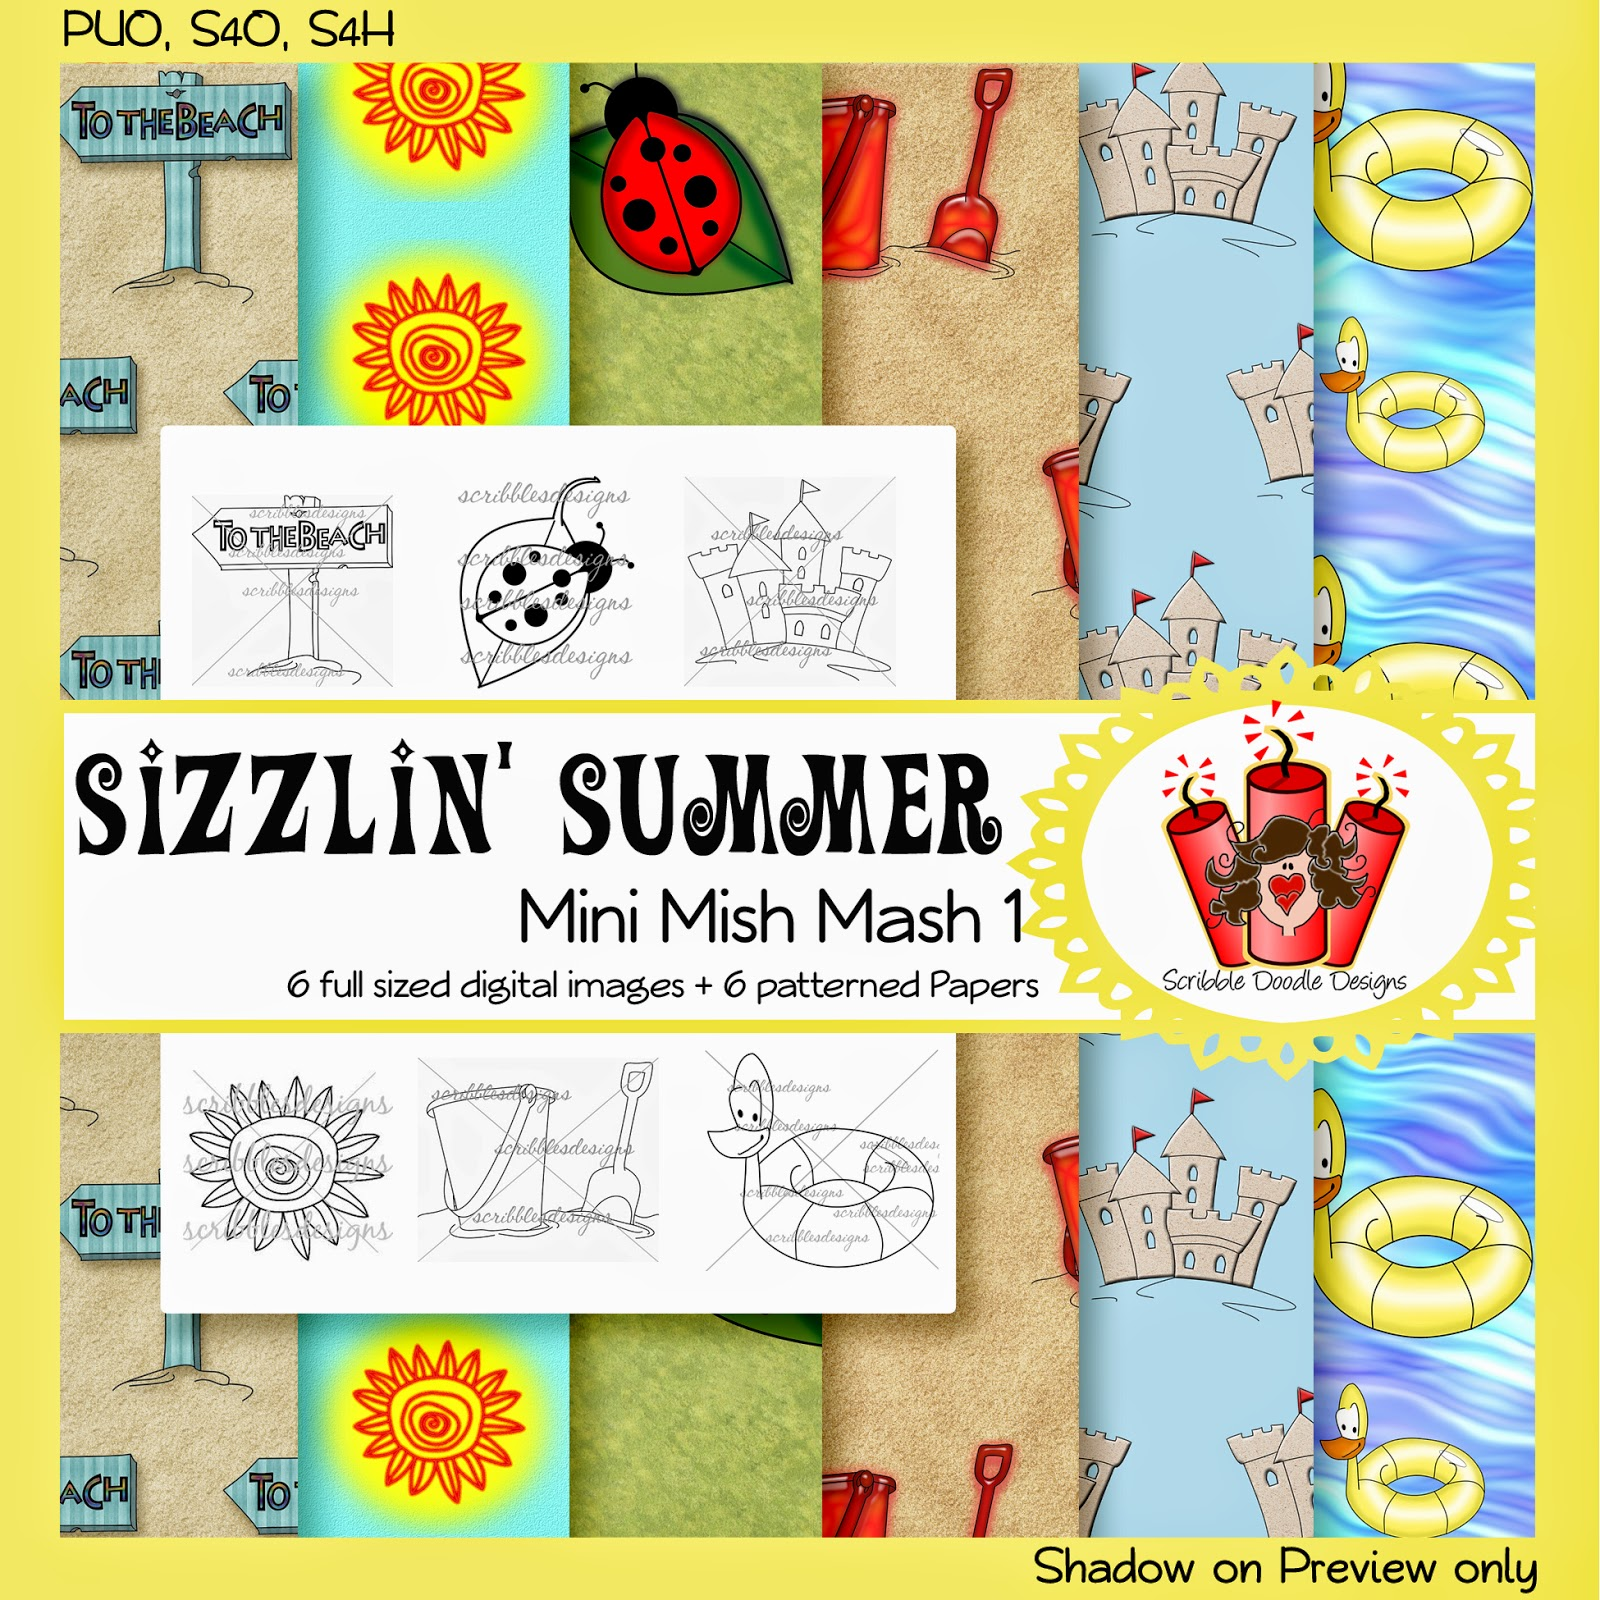 https://4.bp.blogspot.com/-1Q2ZBhXeQ-k/U-Fy3s8CzTI/AAAAAAAAQwE/NCwhLDqxVDE/s1600/preview+for+sizzlin+summer+mash+up+1.jpg